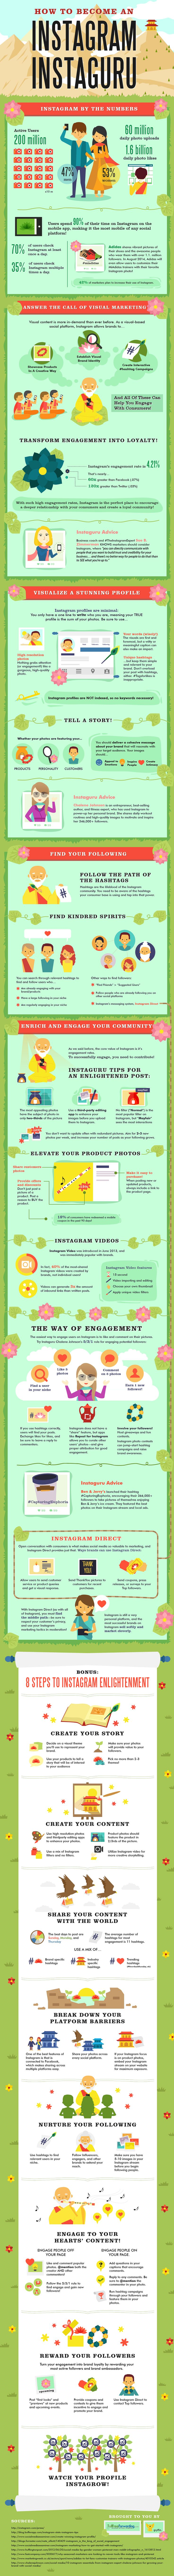 Social Media Marketing On Instagram: Become An Instaguru — #infographic #Instagram #socialmedia #SMM